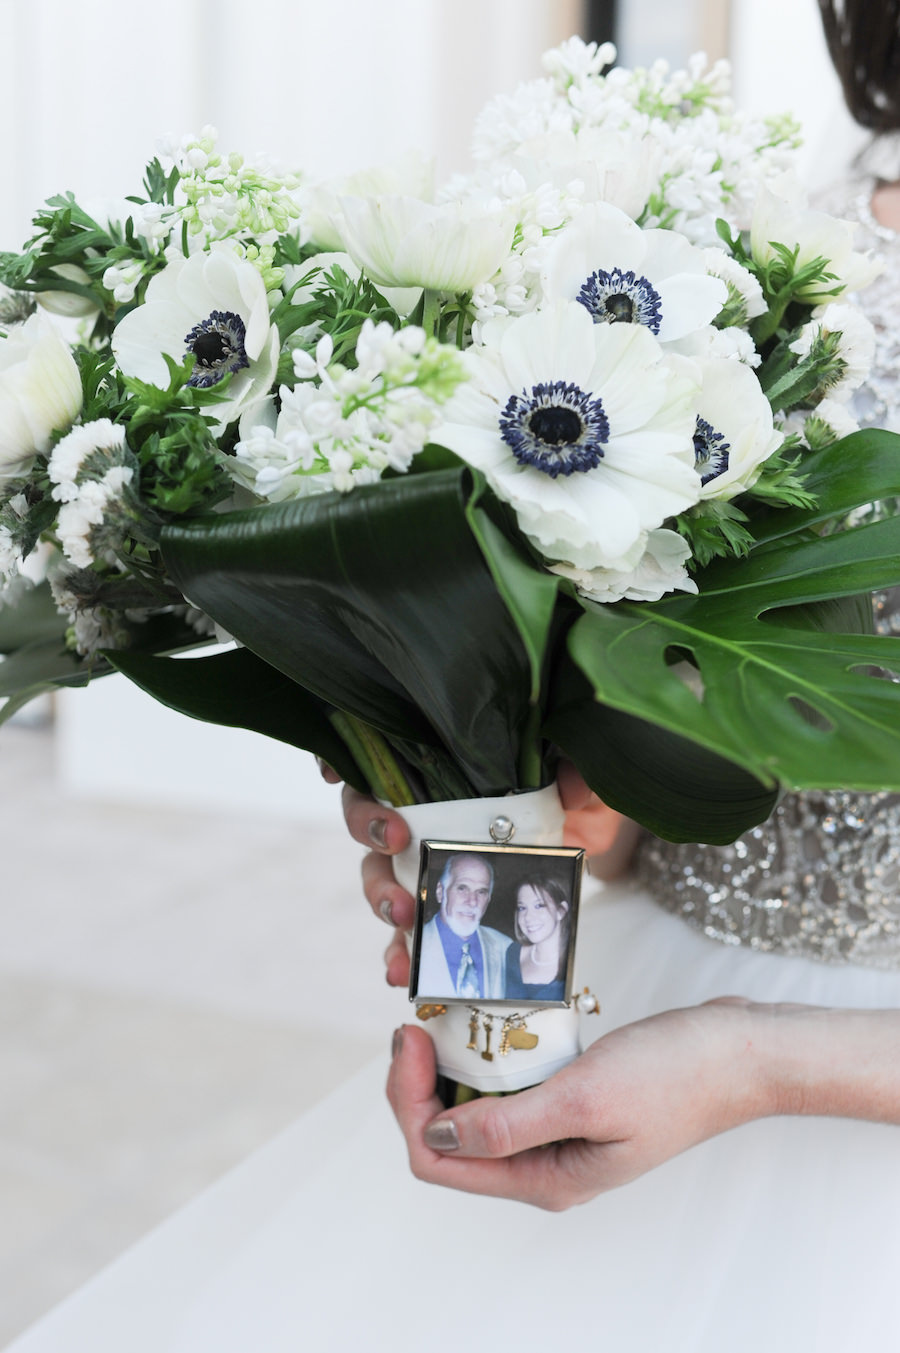 Ivory Anemone Floral Bridal Wedding Bouquet With Memory Photo Charm for Dad